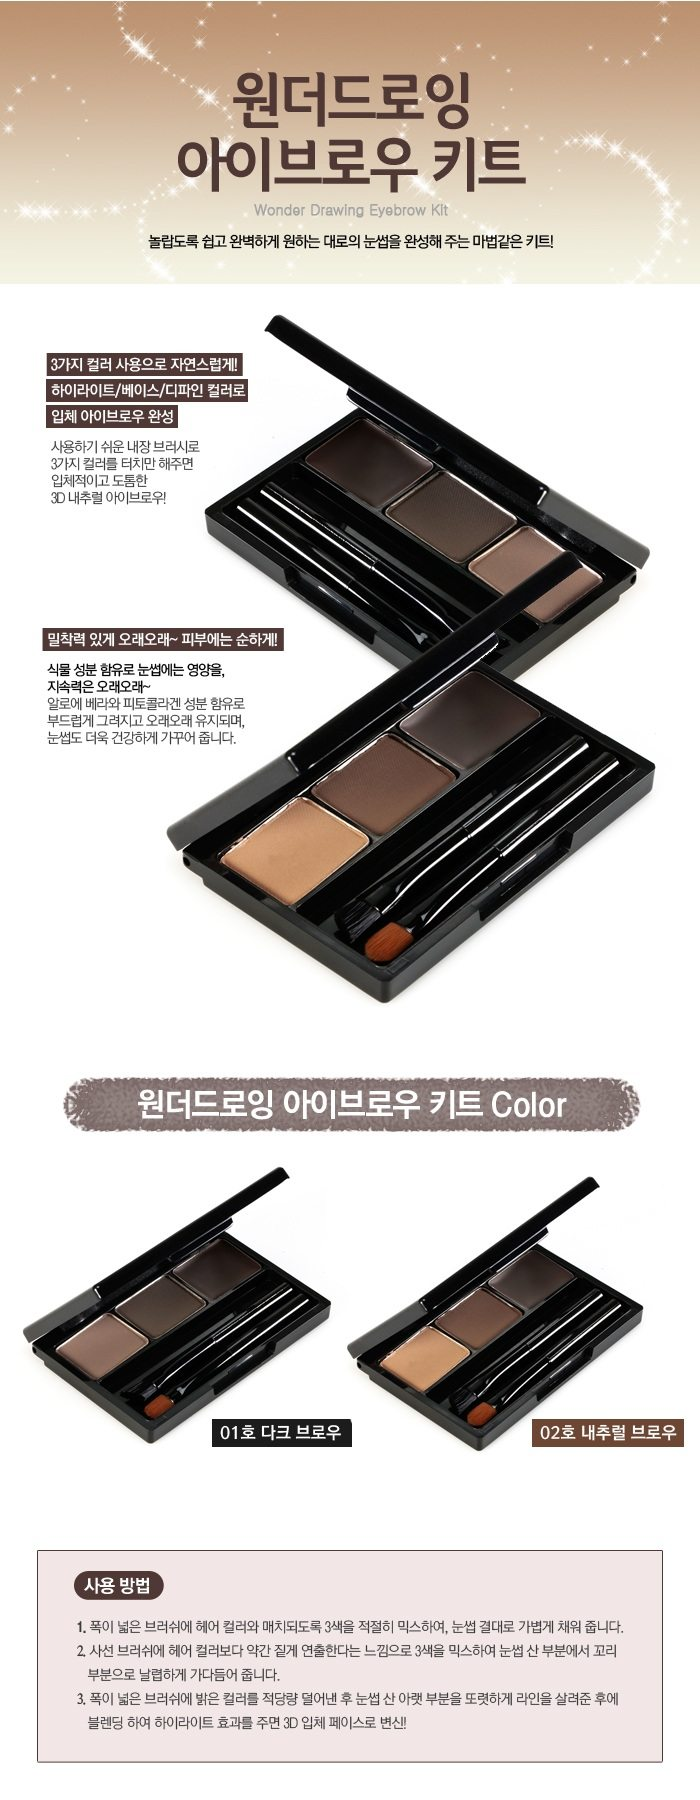 Holika Holika Wonder Drawing Eyebrow Kit Korean Beauty Care Shop